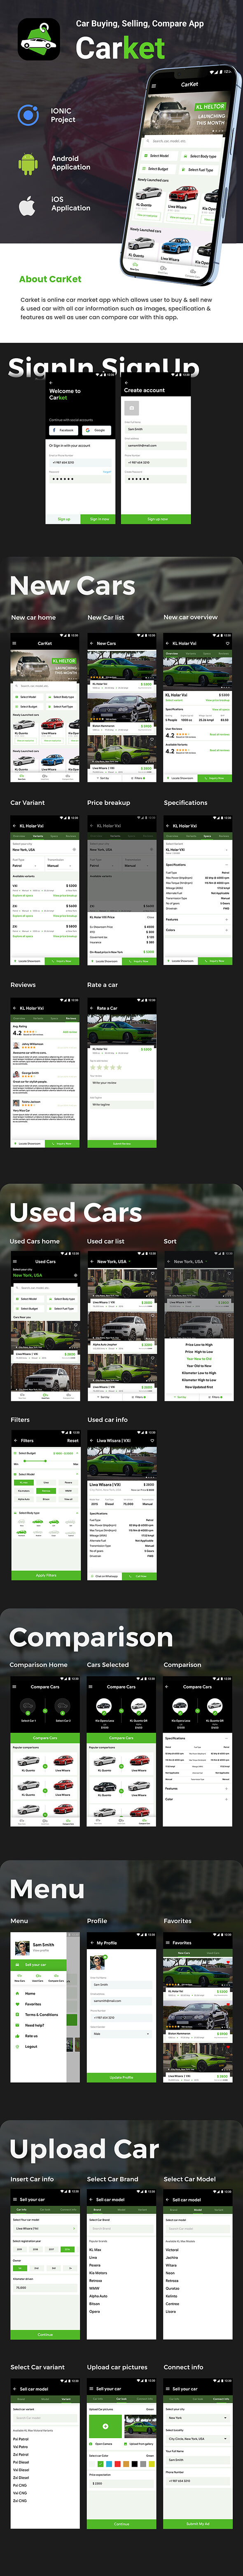 Car Buying, Selling & comparison Android + iOS App Template | HTML + Css IONIC 3 | CarKet - 2